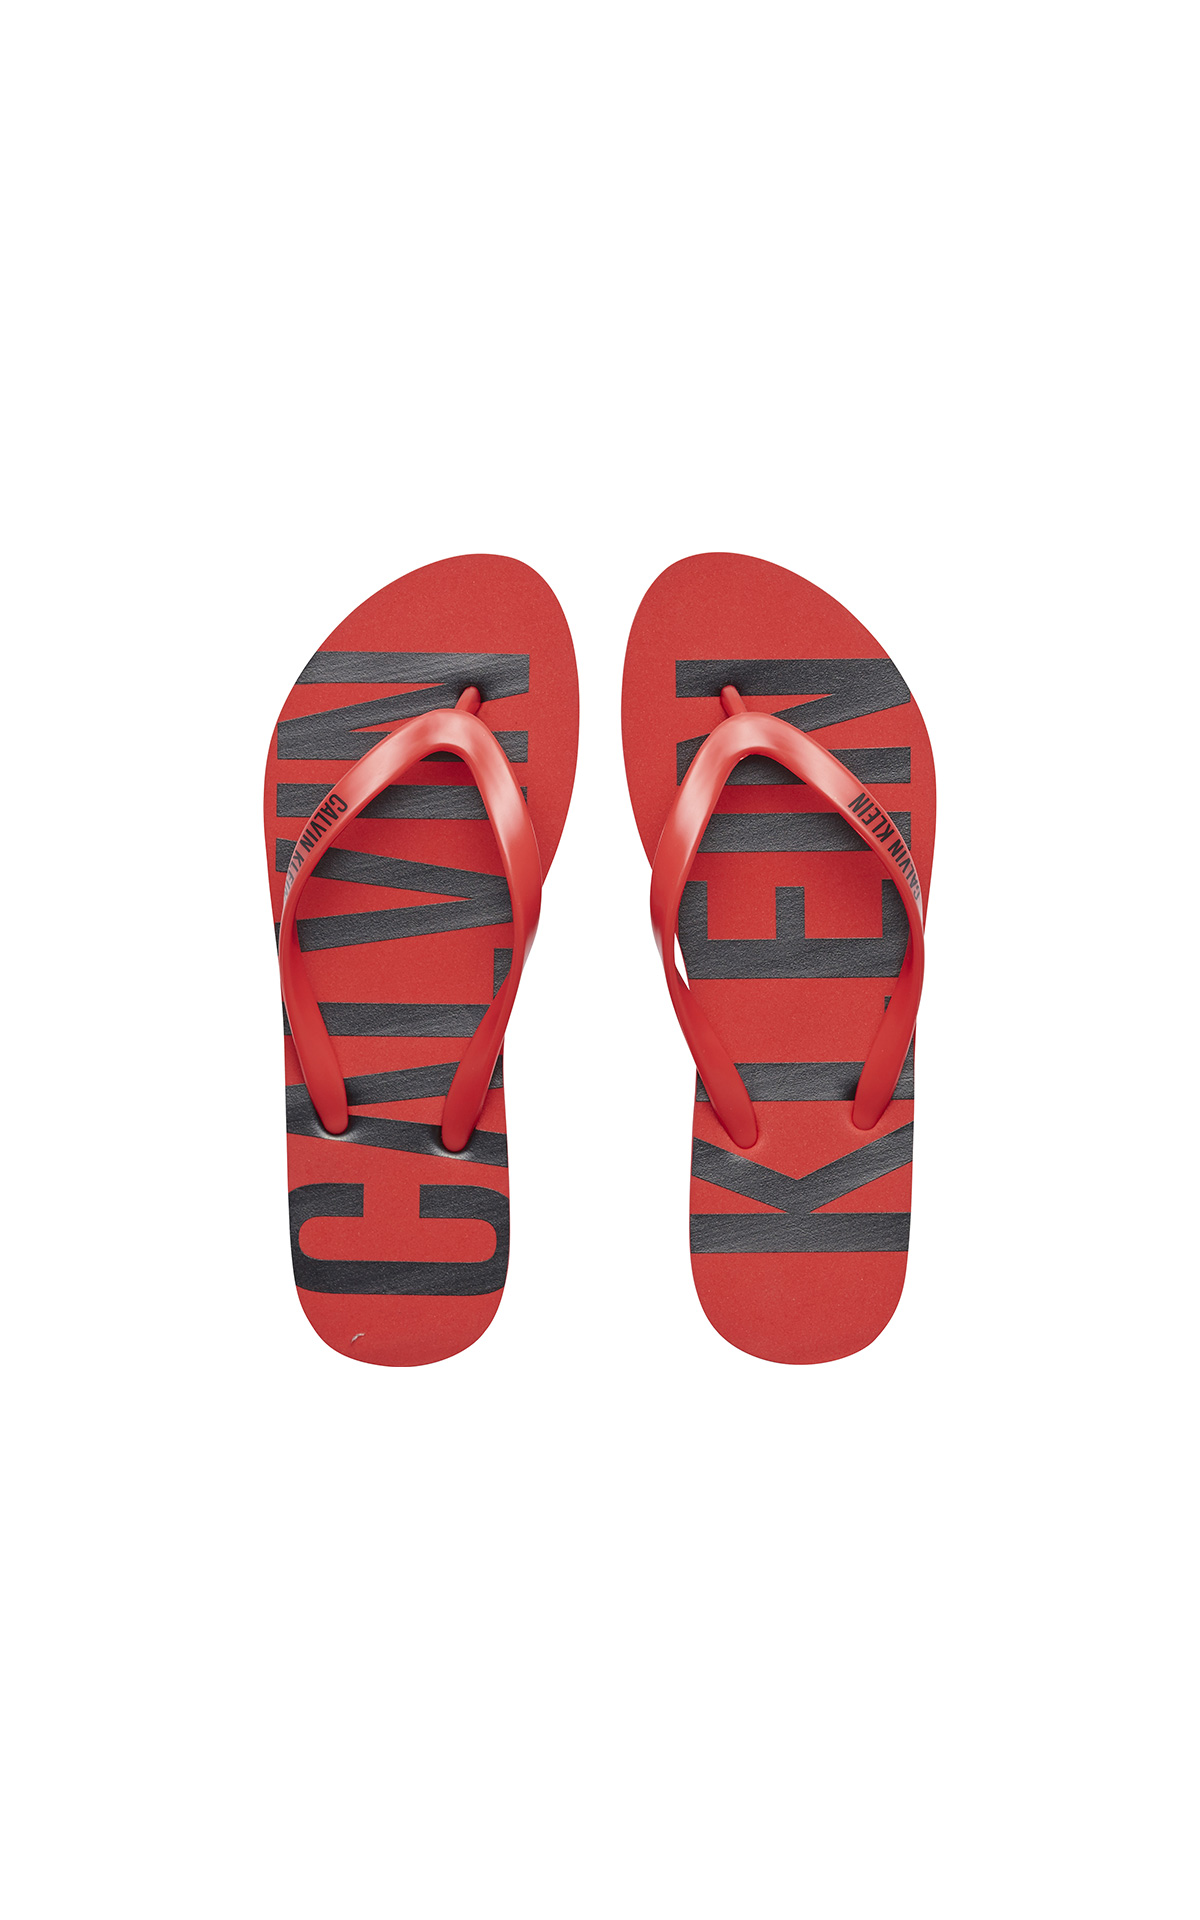 Calvin Klein flip flops at The Bicester Village Shopping Collection